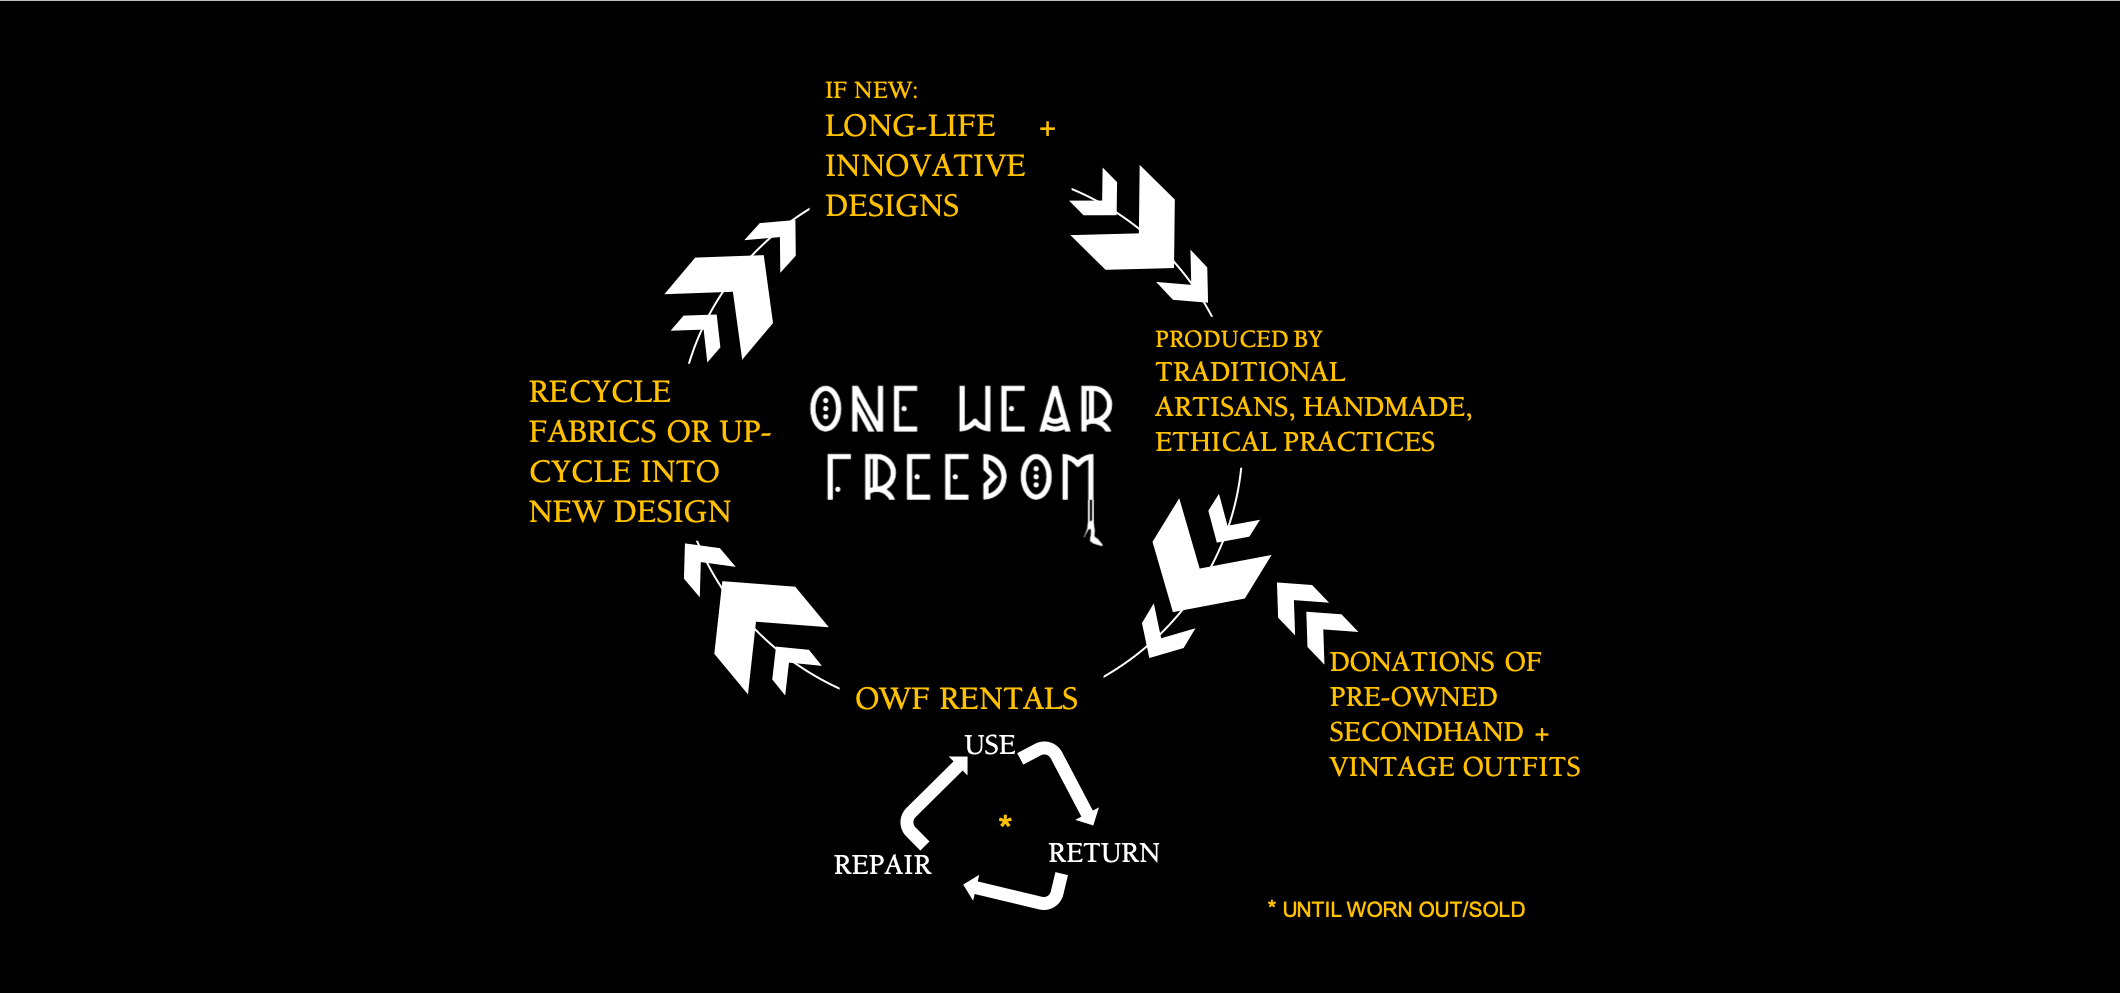 One Wear Freedom | Circular Fashion Economy Diagram